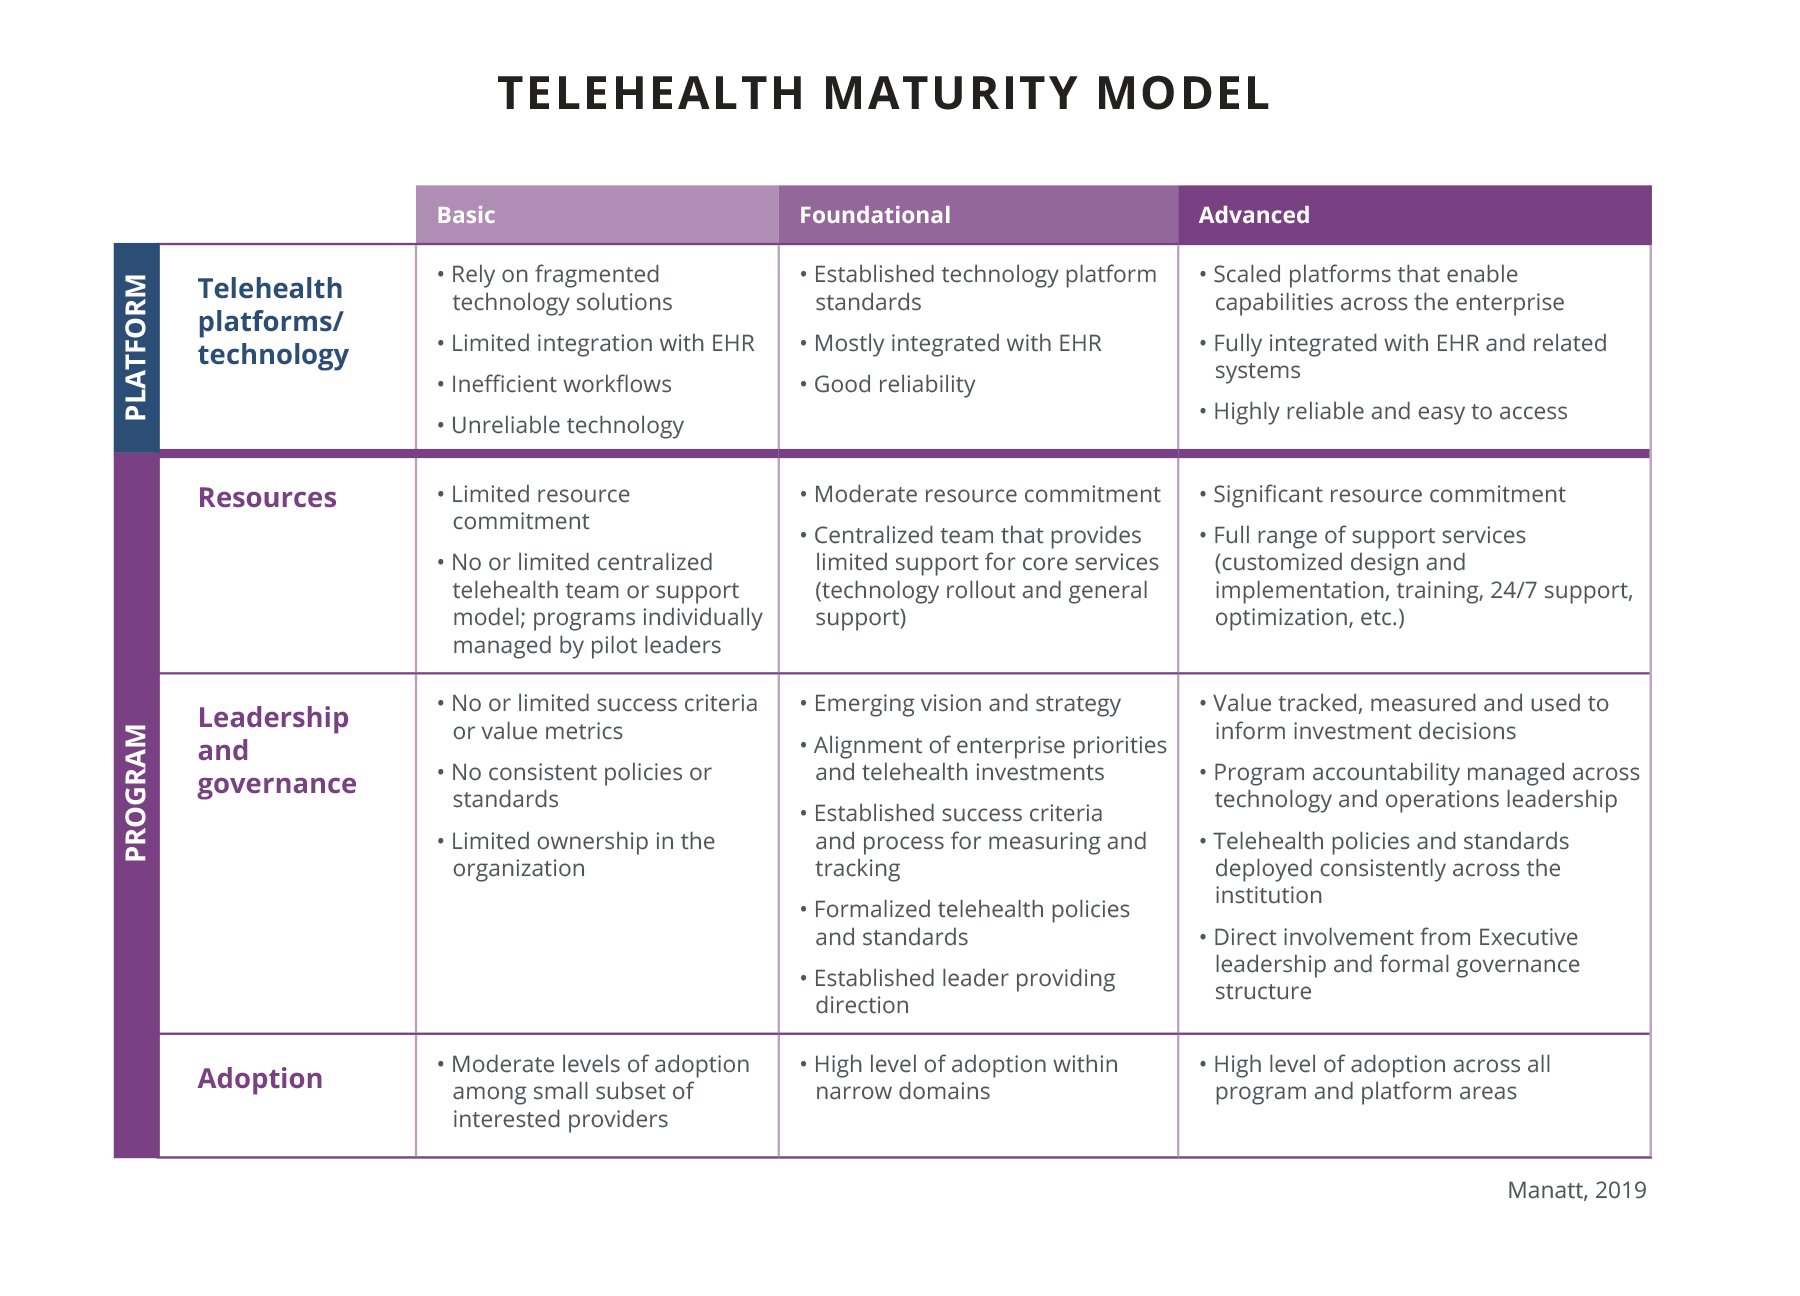 Maturity Model graphic